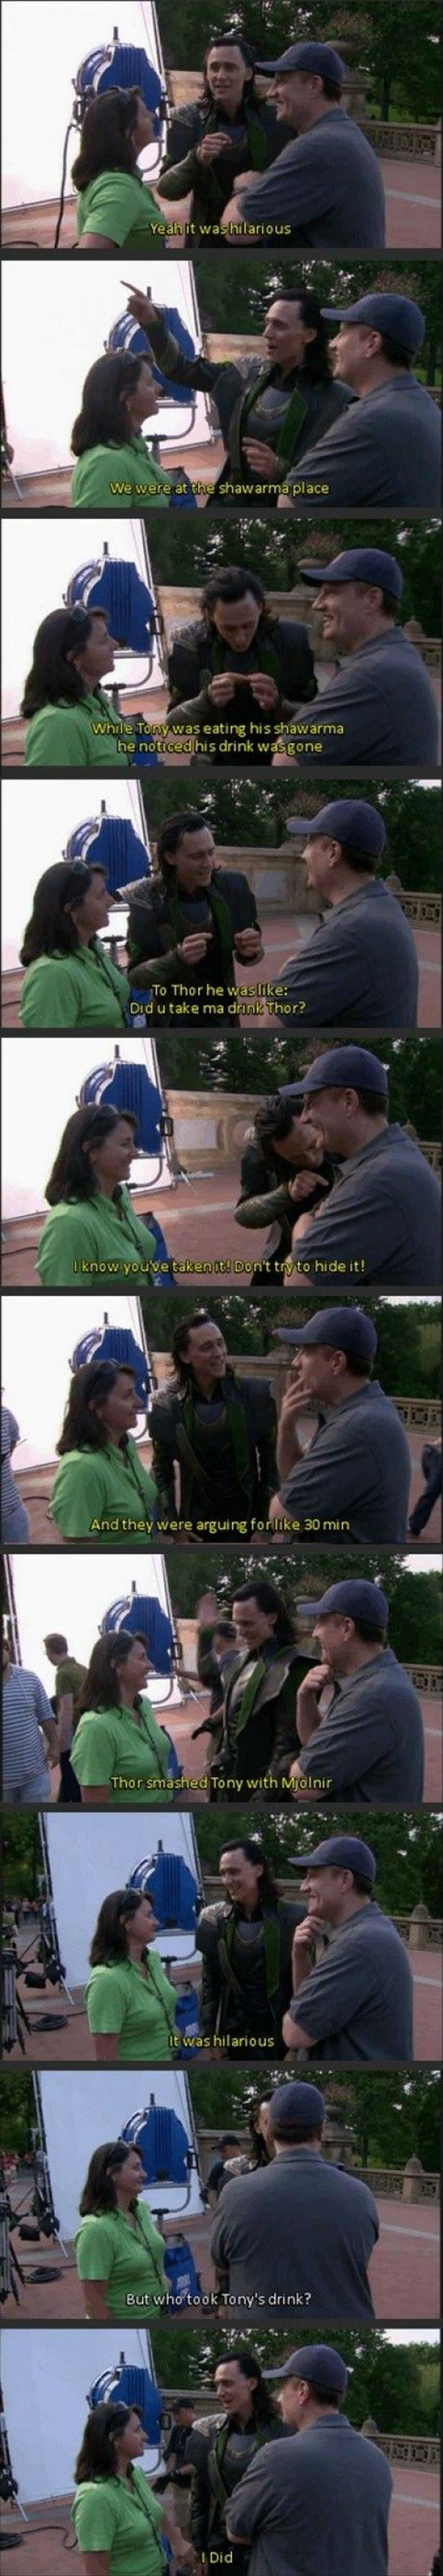 Loki, Avengers humor, Tom Hiddleston,